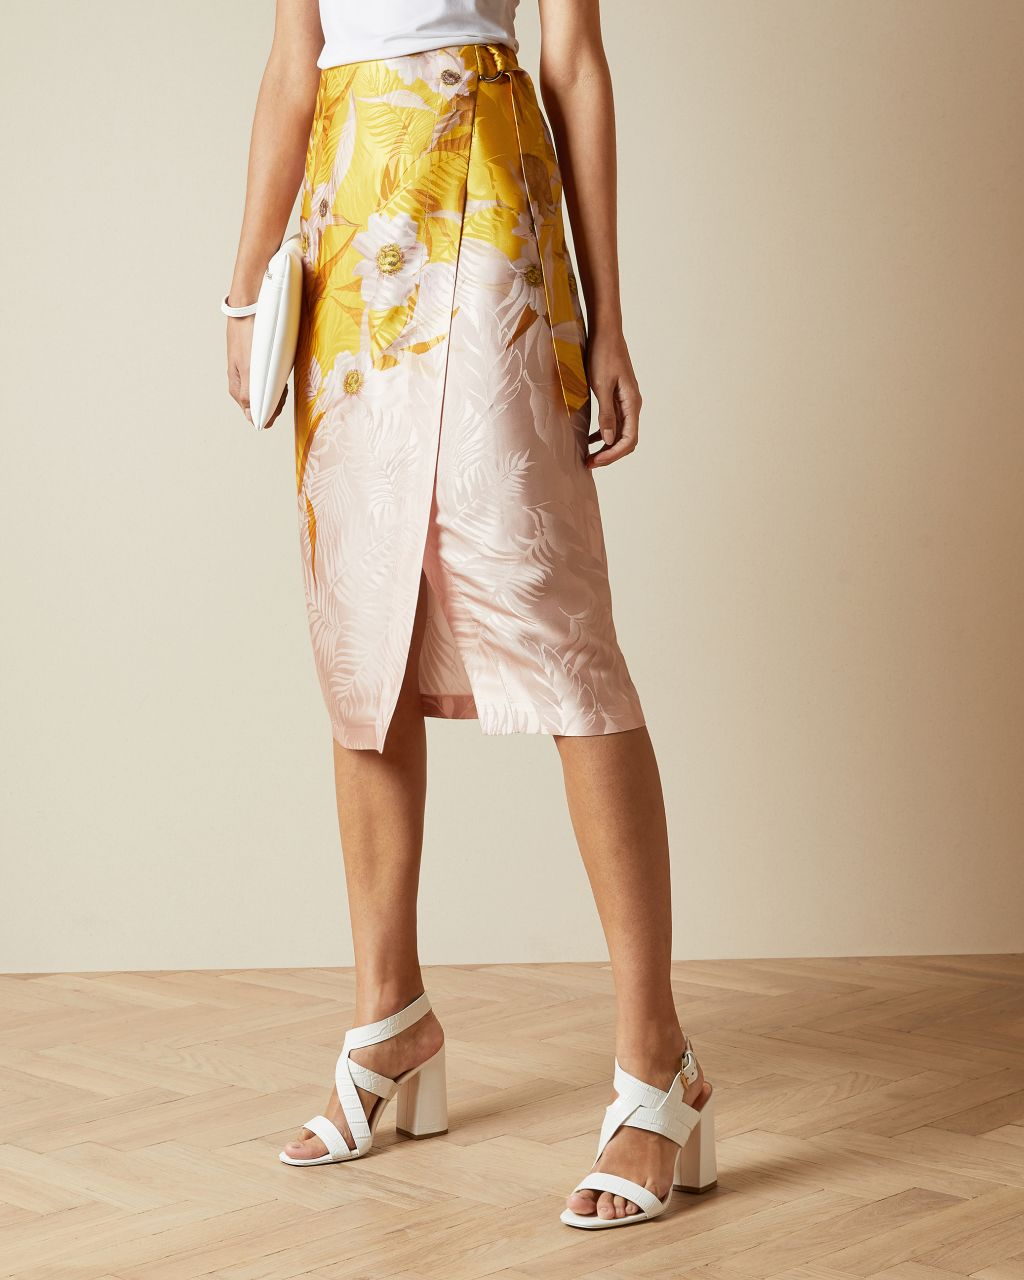 TED BAKER Wickelrock Mit Cabana-print | TED BAKER SALE